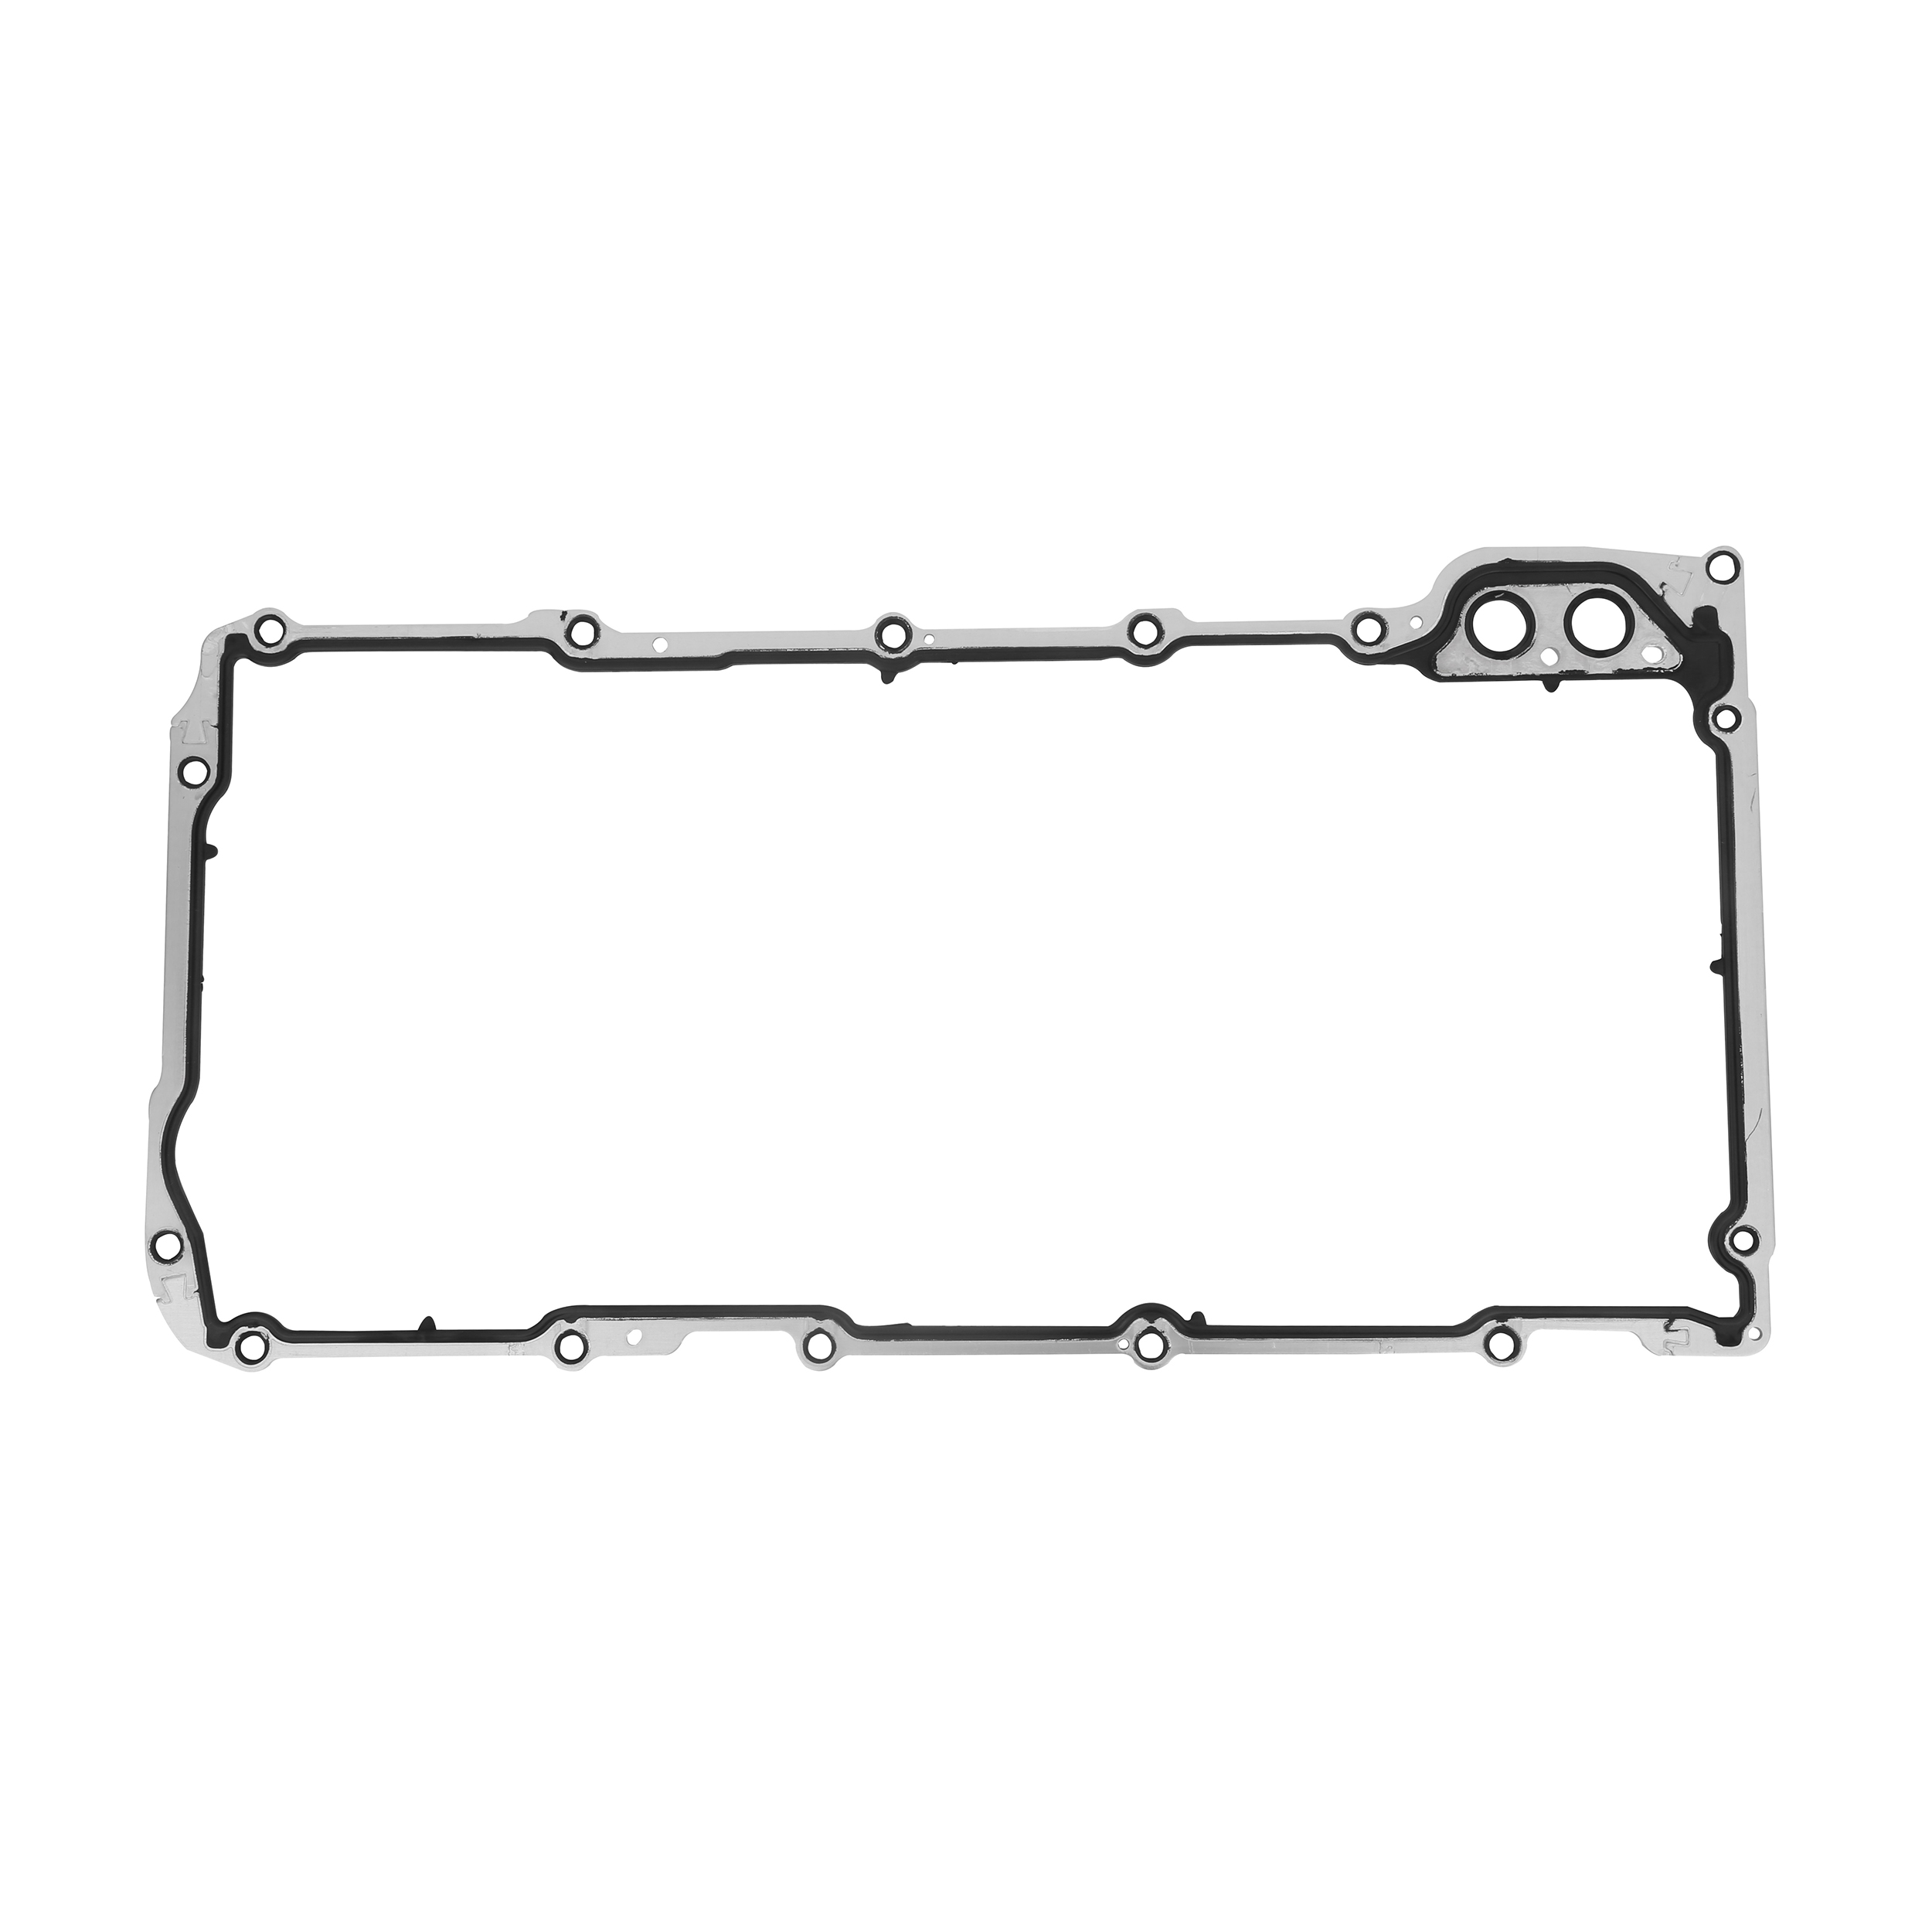 Oil Pan Gasket - Replaces 12612350 - Compatible with Buick, Cadillac Vehicles Image